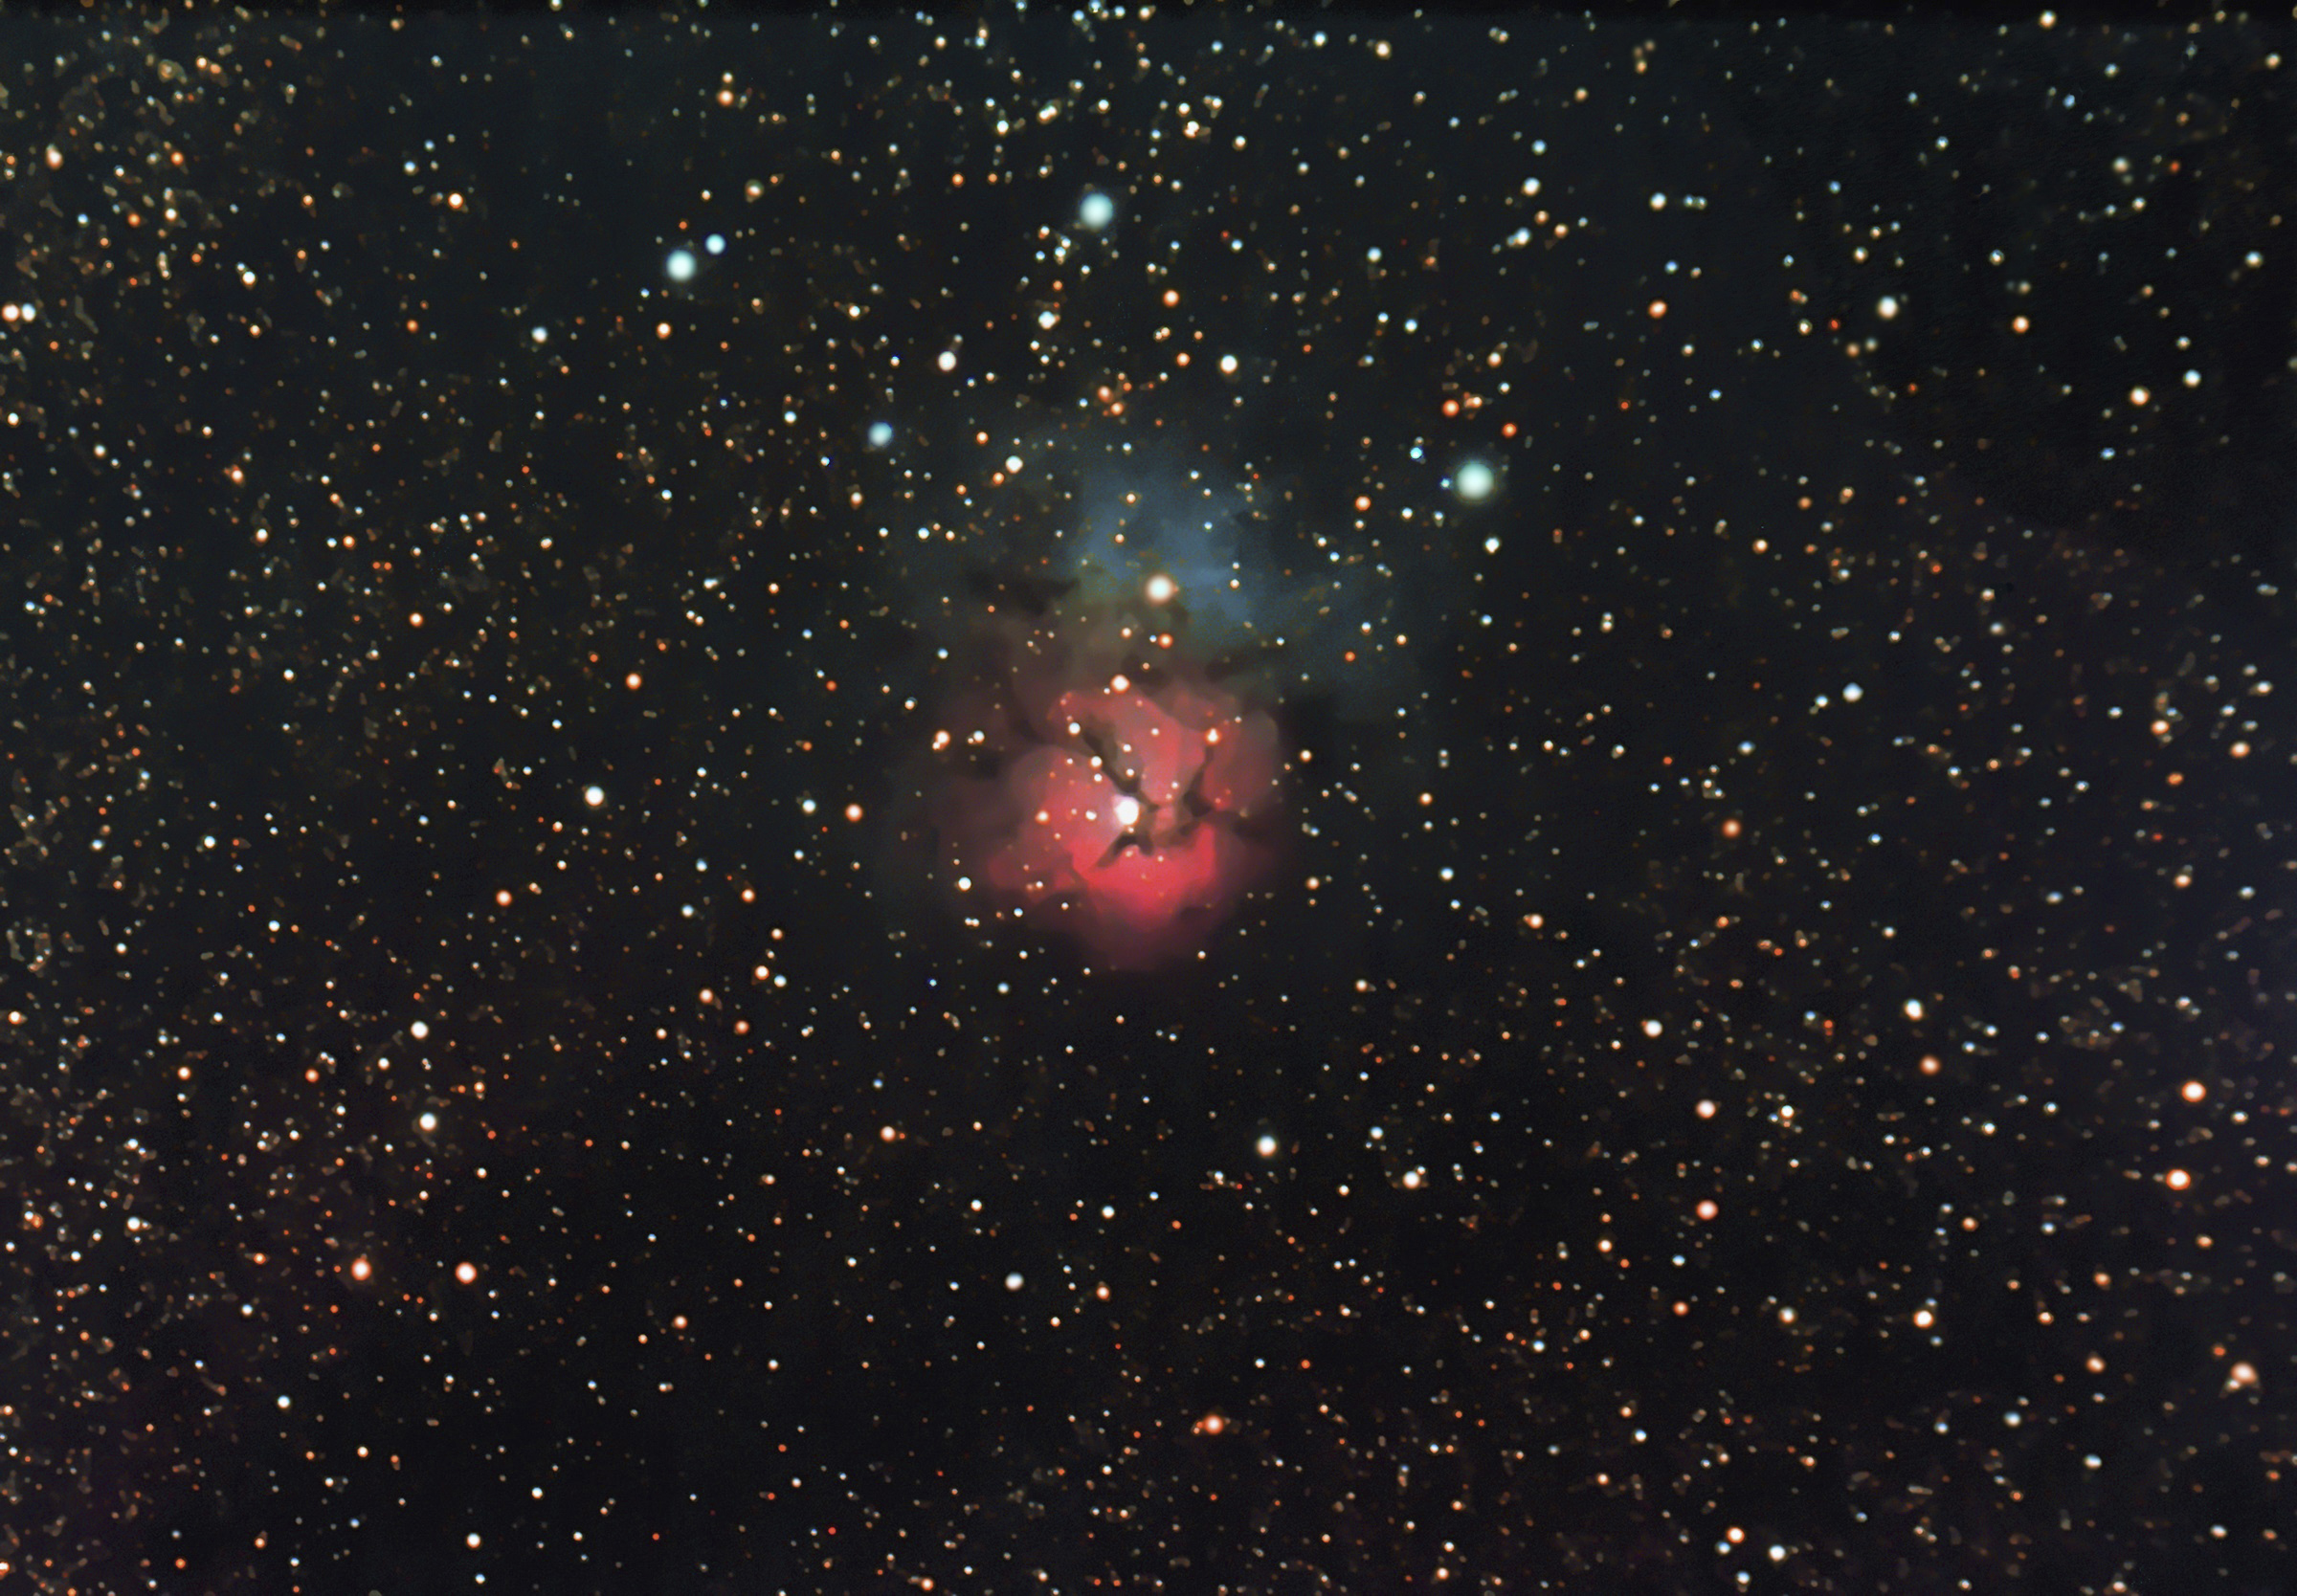 23 The Trifid Nebula (Messier 20)